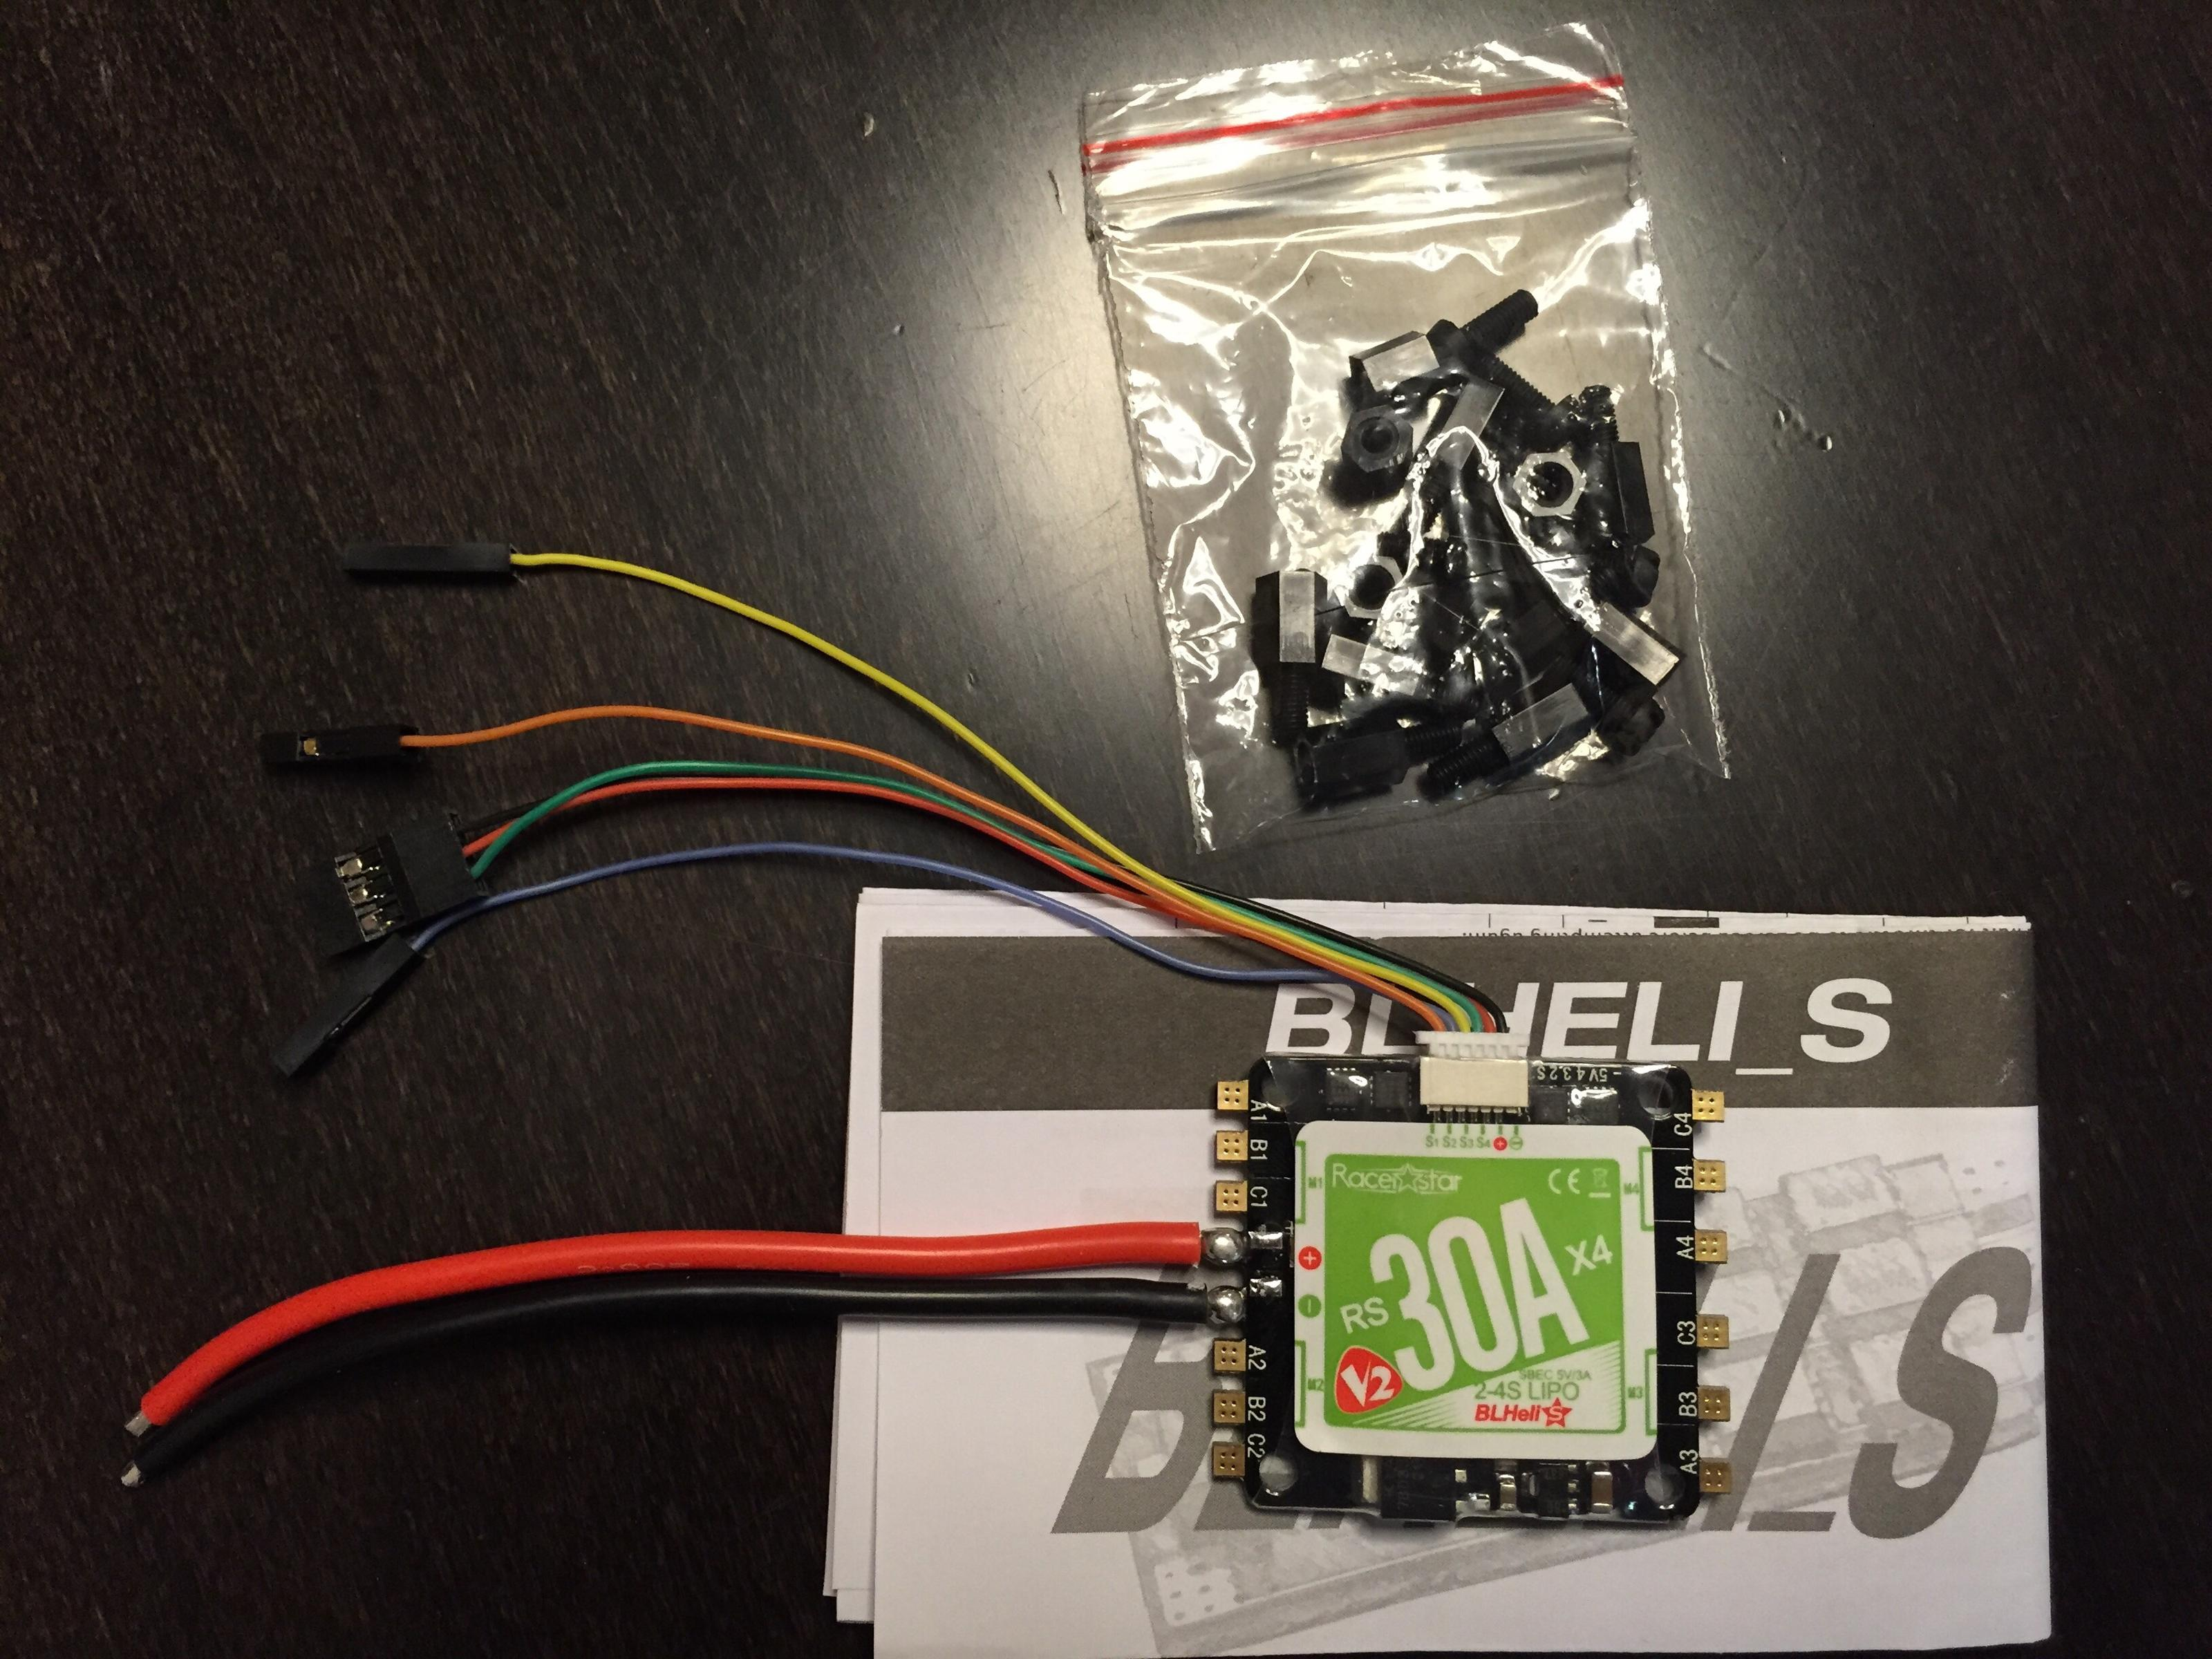 a9826442 76 image a003bf08 review of 4in1 bb2 5vbec 30a racerstar rs30x4 30a blheli_s esc Simple Electrical Wiring Diagrams at aneh.co